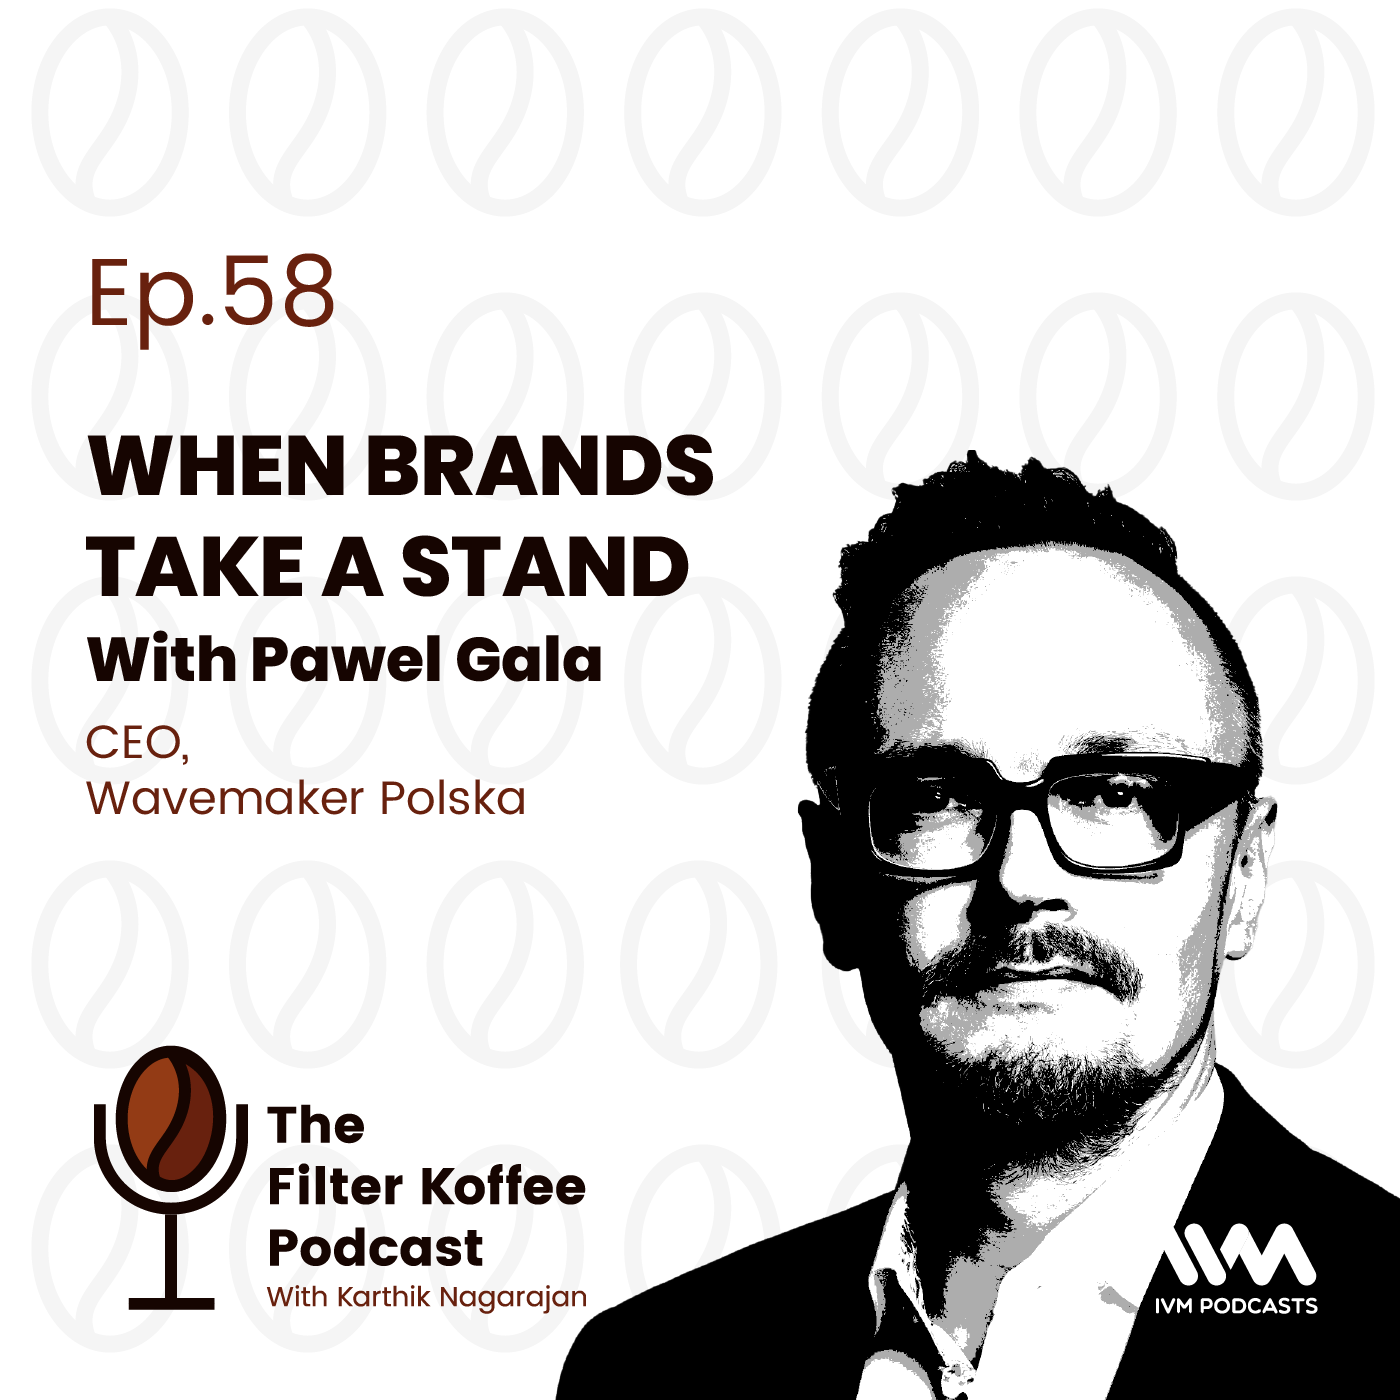 Ep. 58: When Brands Take A Stand